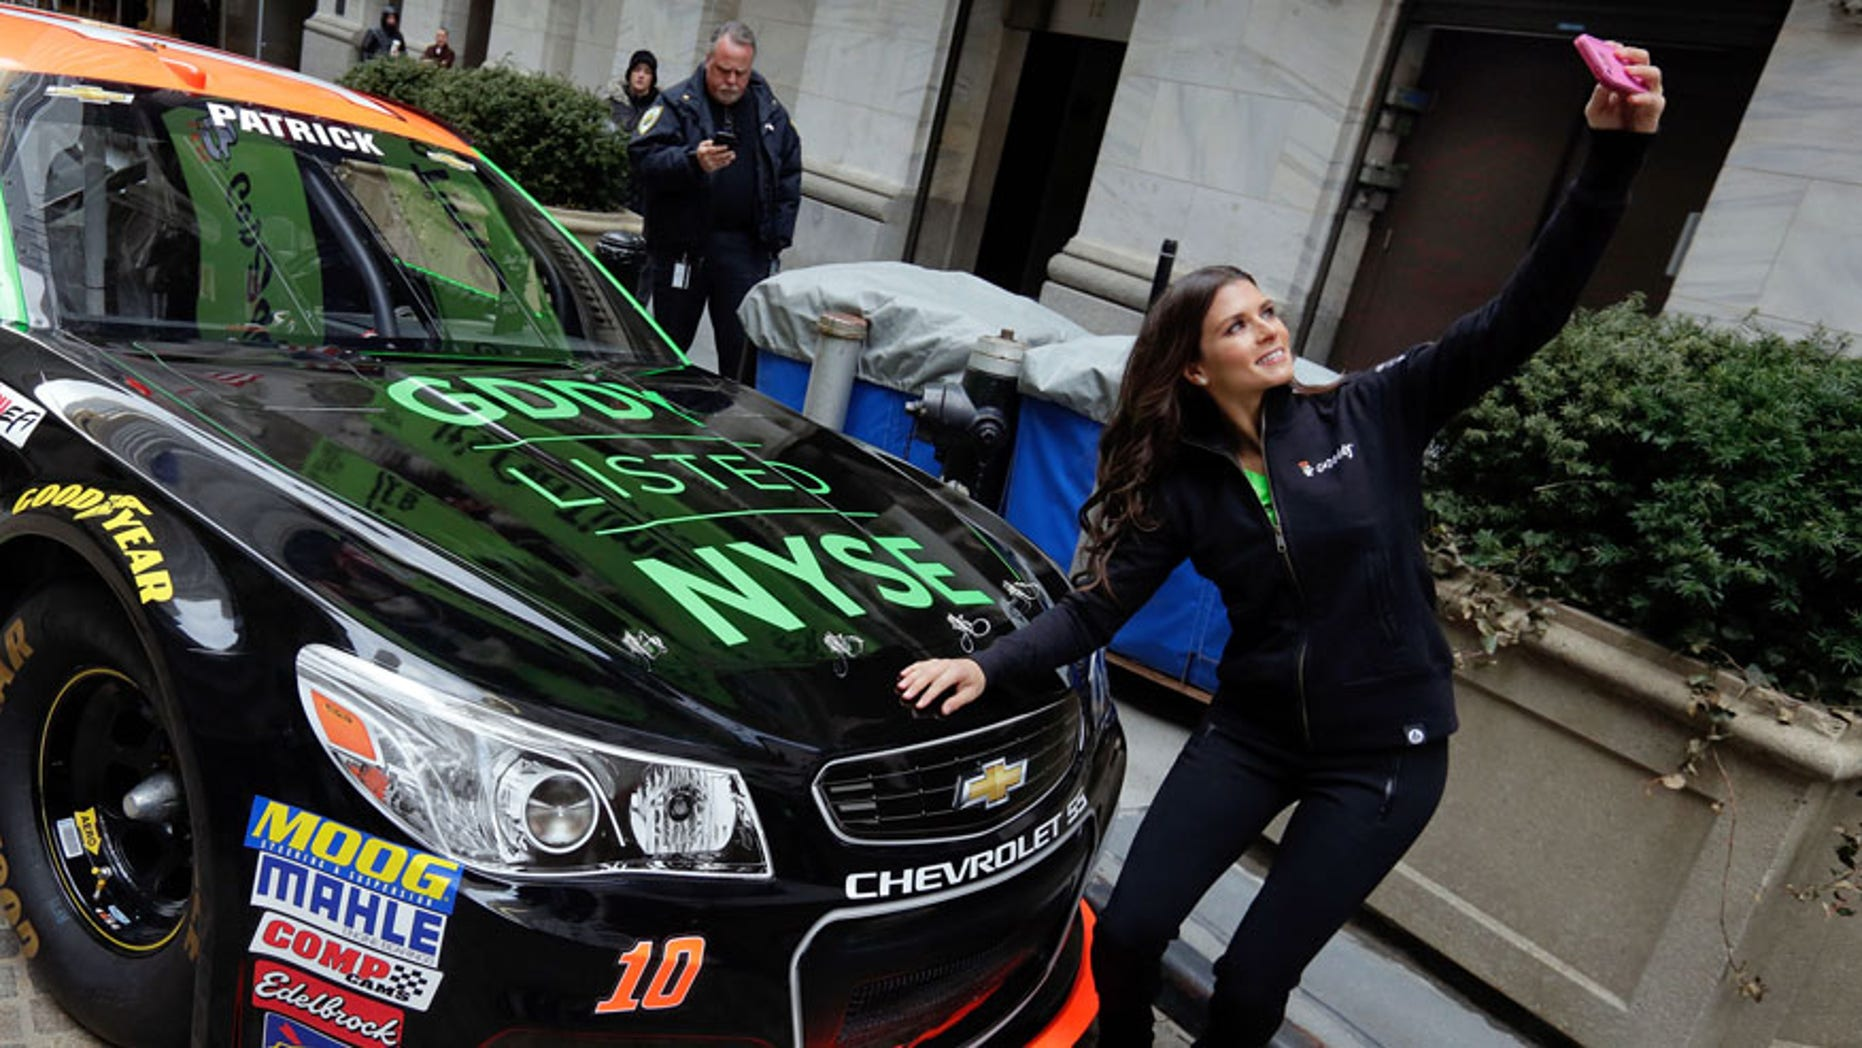 Race car driver Danica Patrick takes a selfie with her car in front of the New York Stock Exchange, before the GoDaddy IPO, Wednesday, April 1, 2015. (AP Photo/Richard Drew)